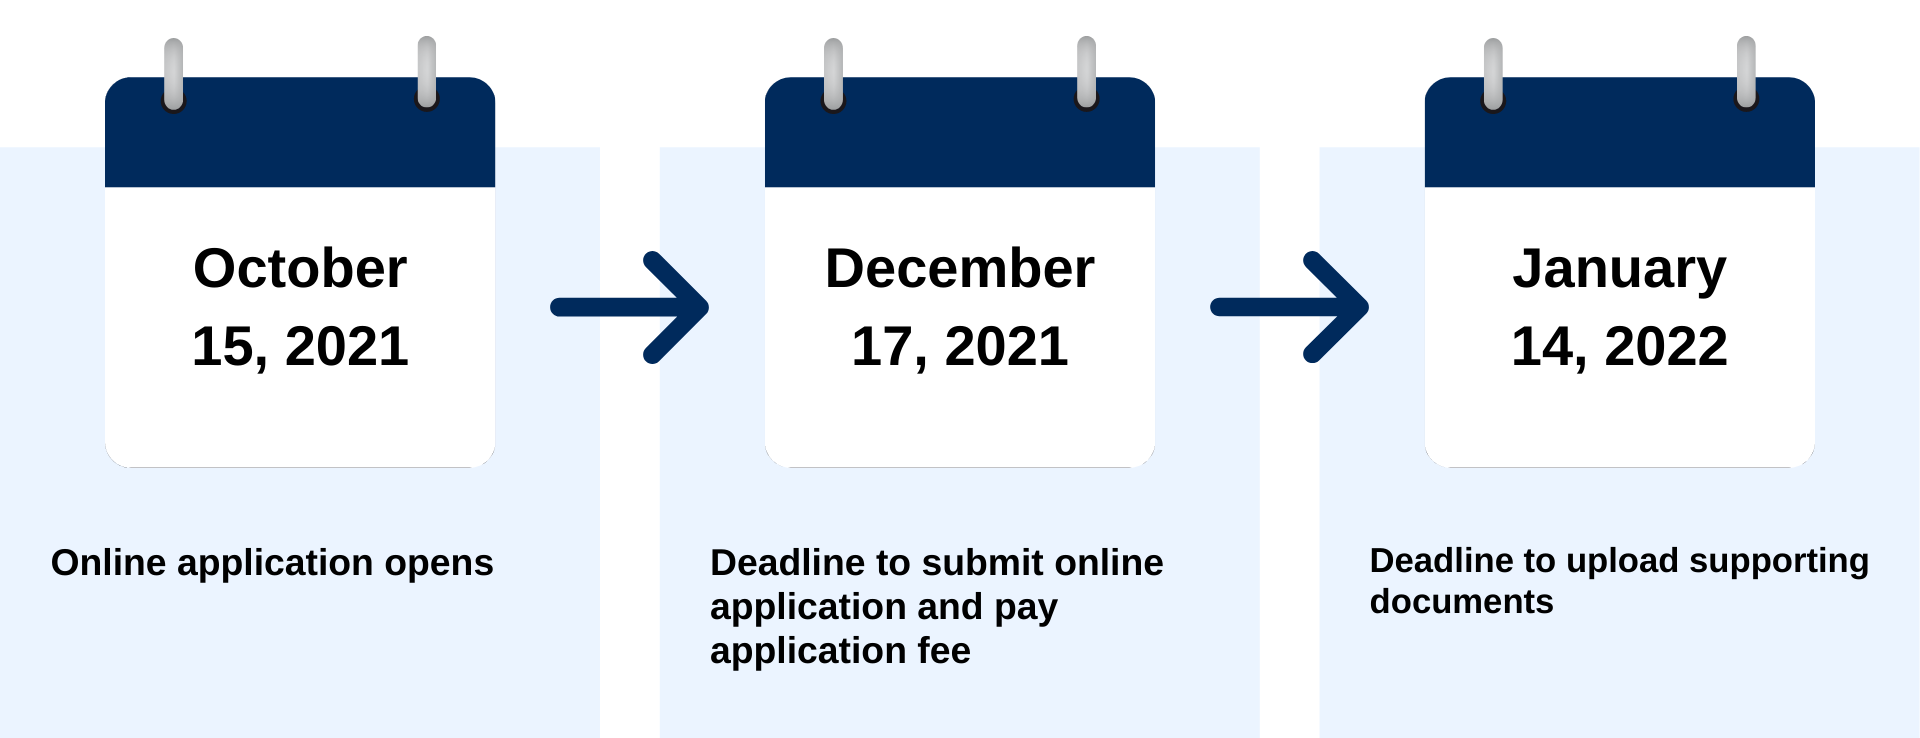 October Online application opens  December Deadline to submit online application and pay application fee  January Deadline to upload supporting documents